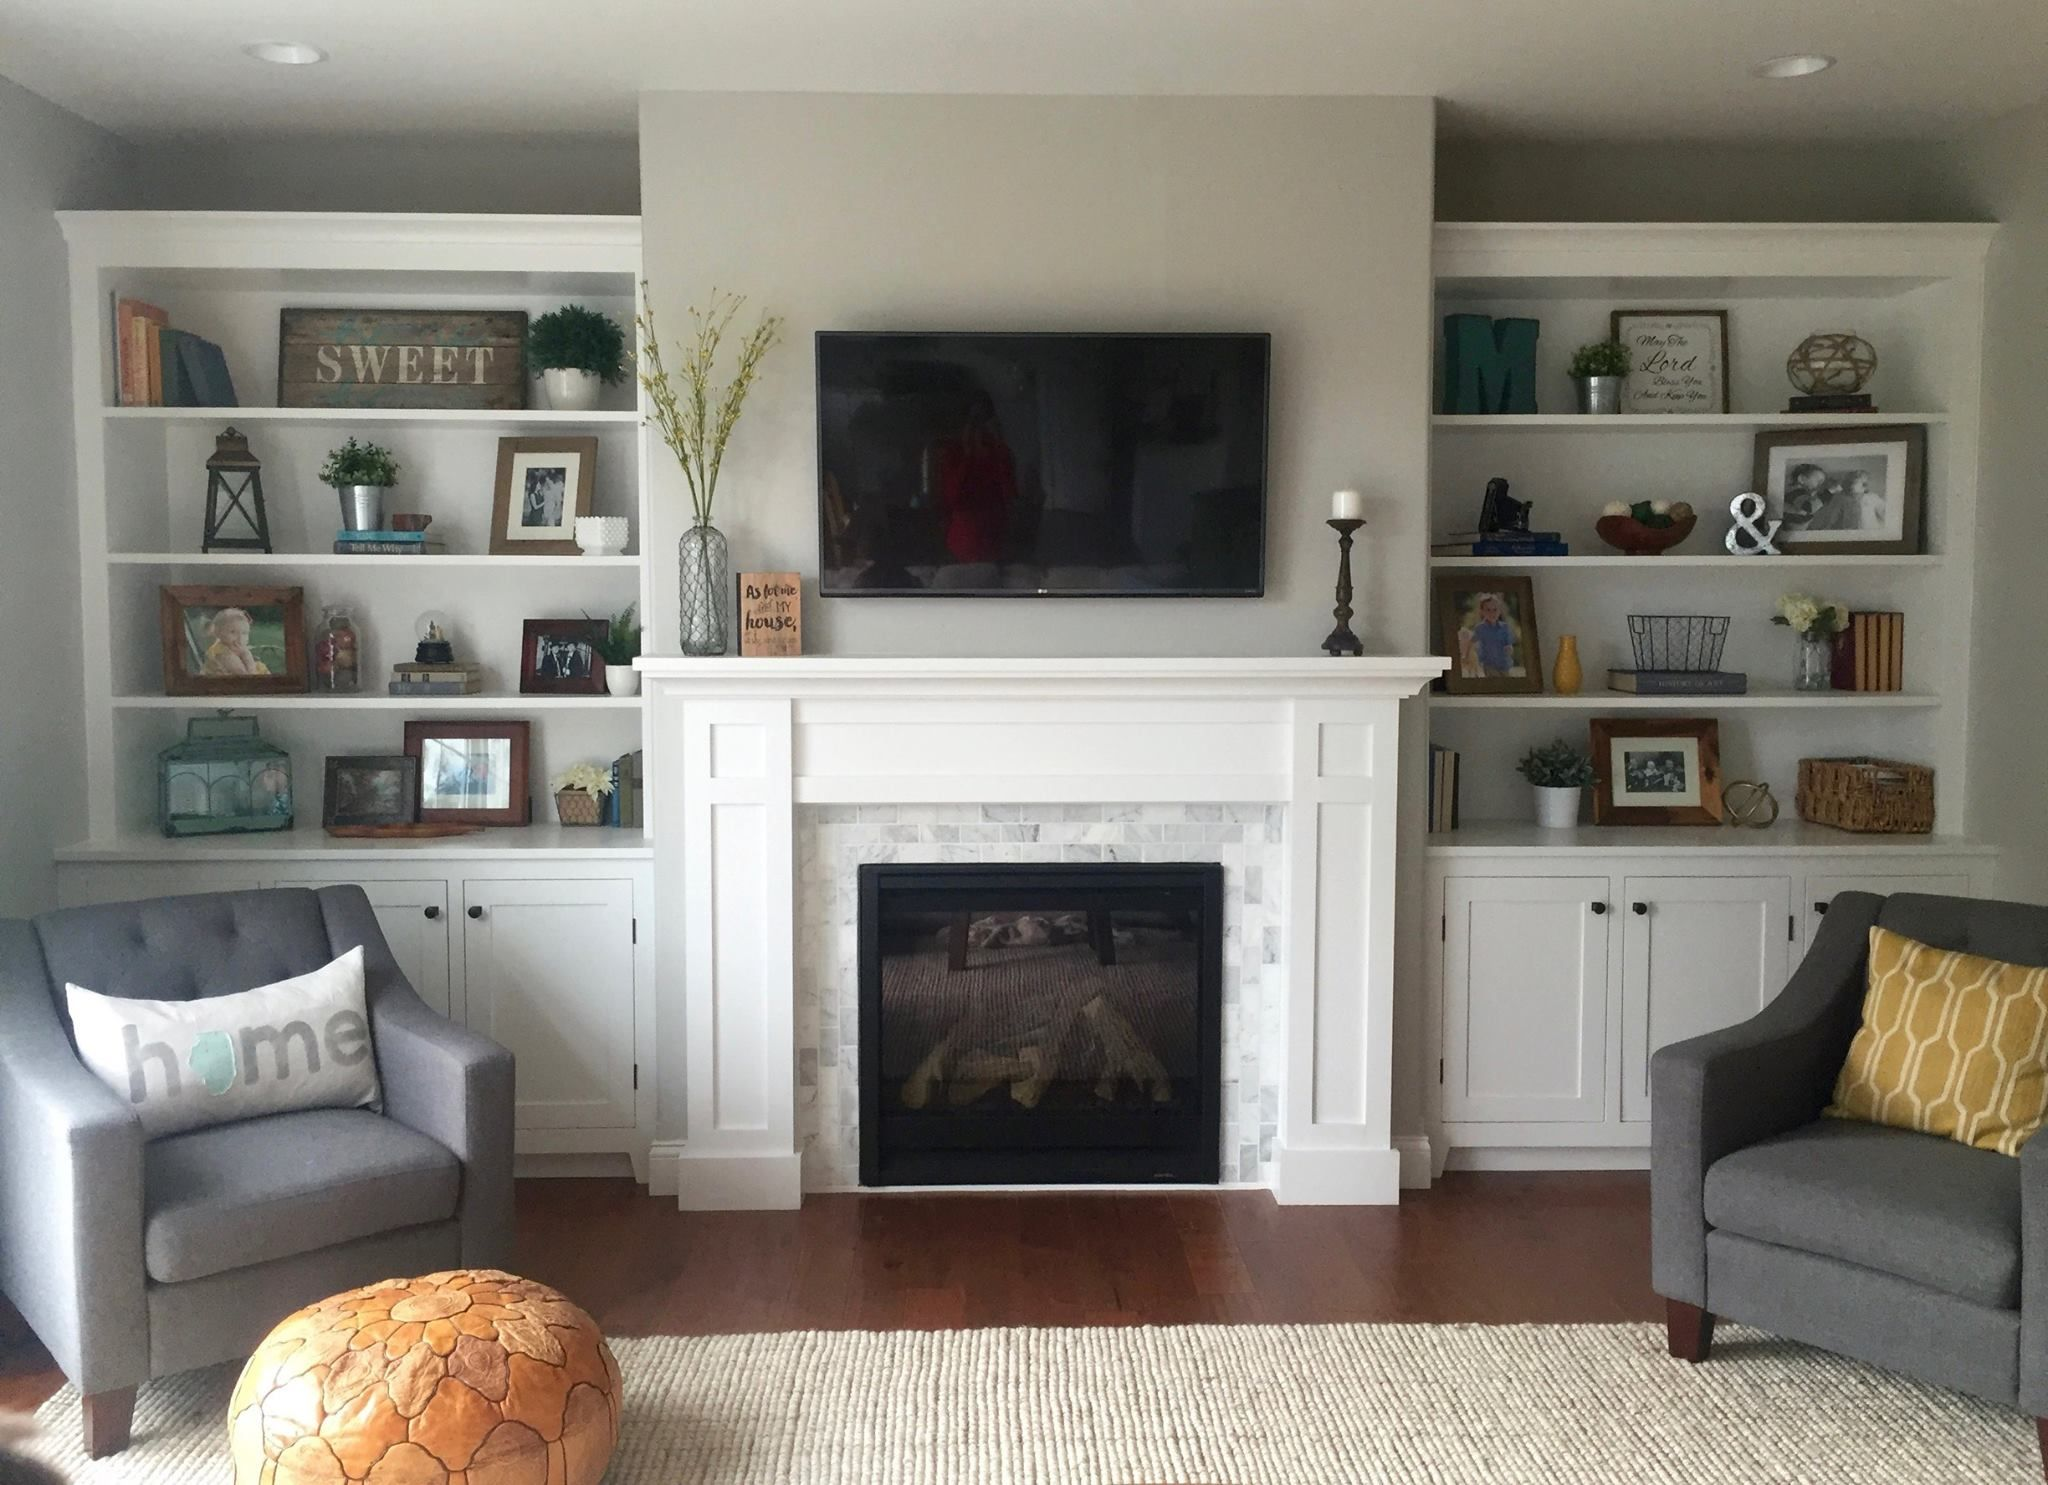 Chairs In Front Of Fireplace Fresh Instructions to Build This Fireplace Mantel with Built In